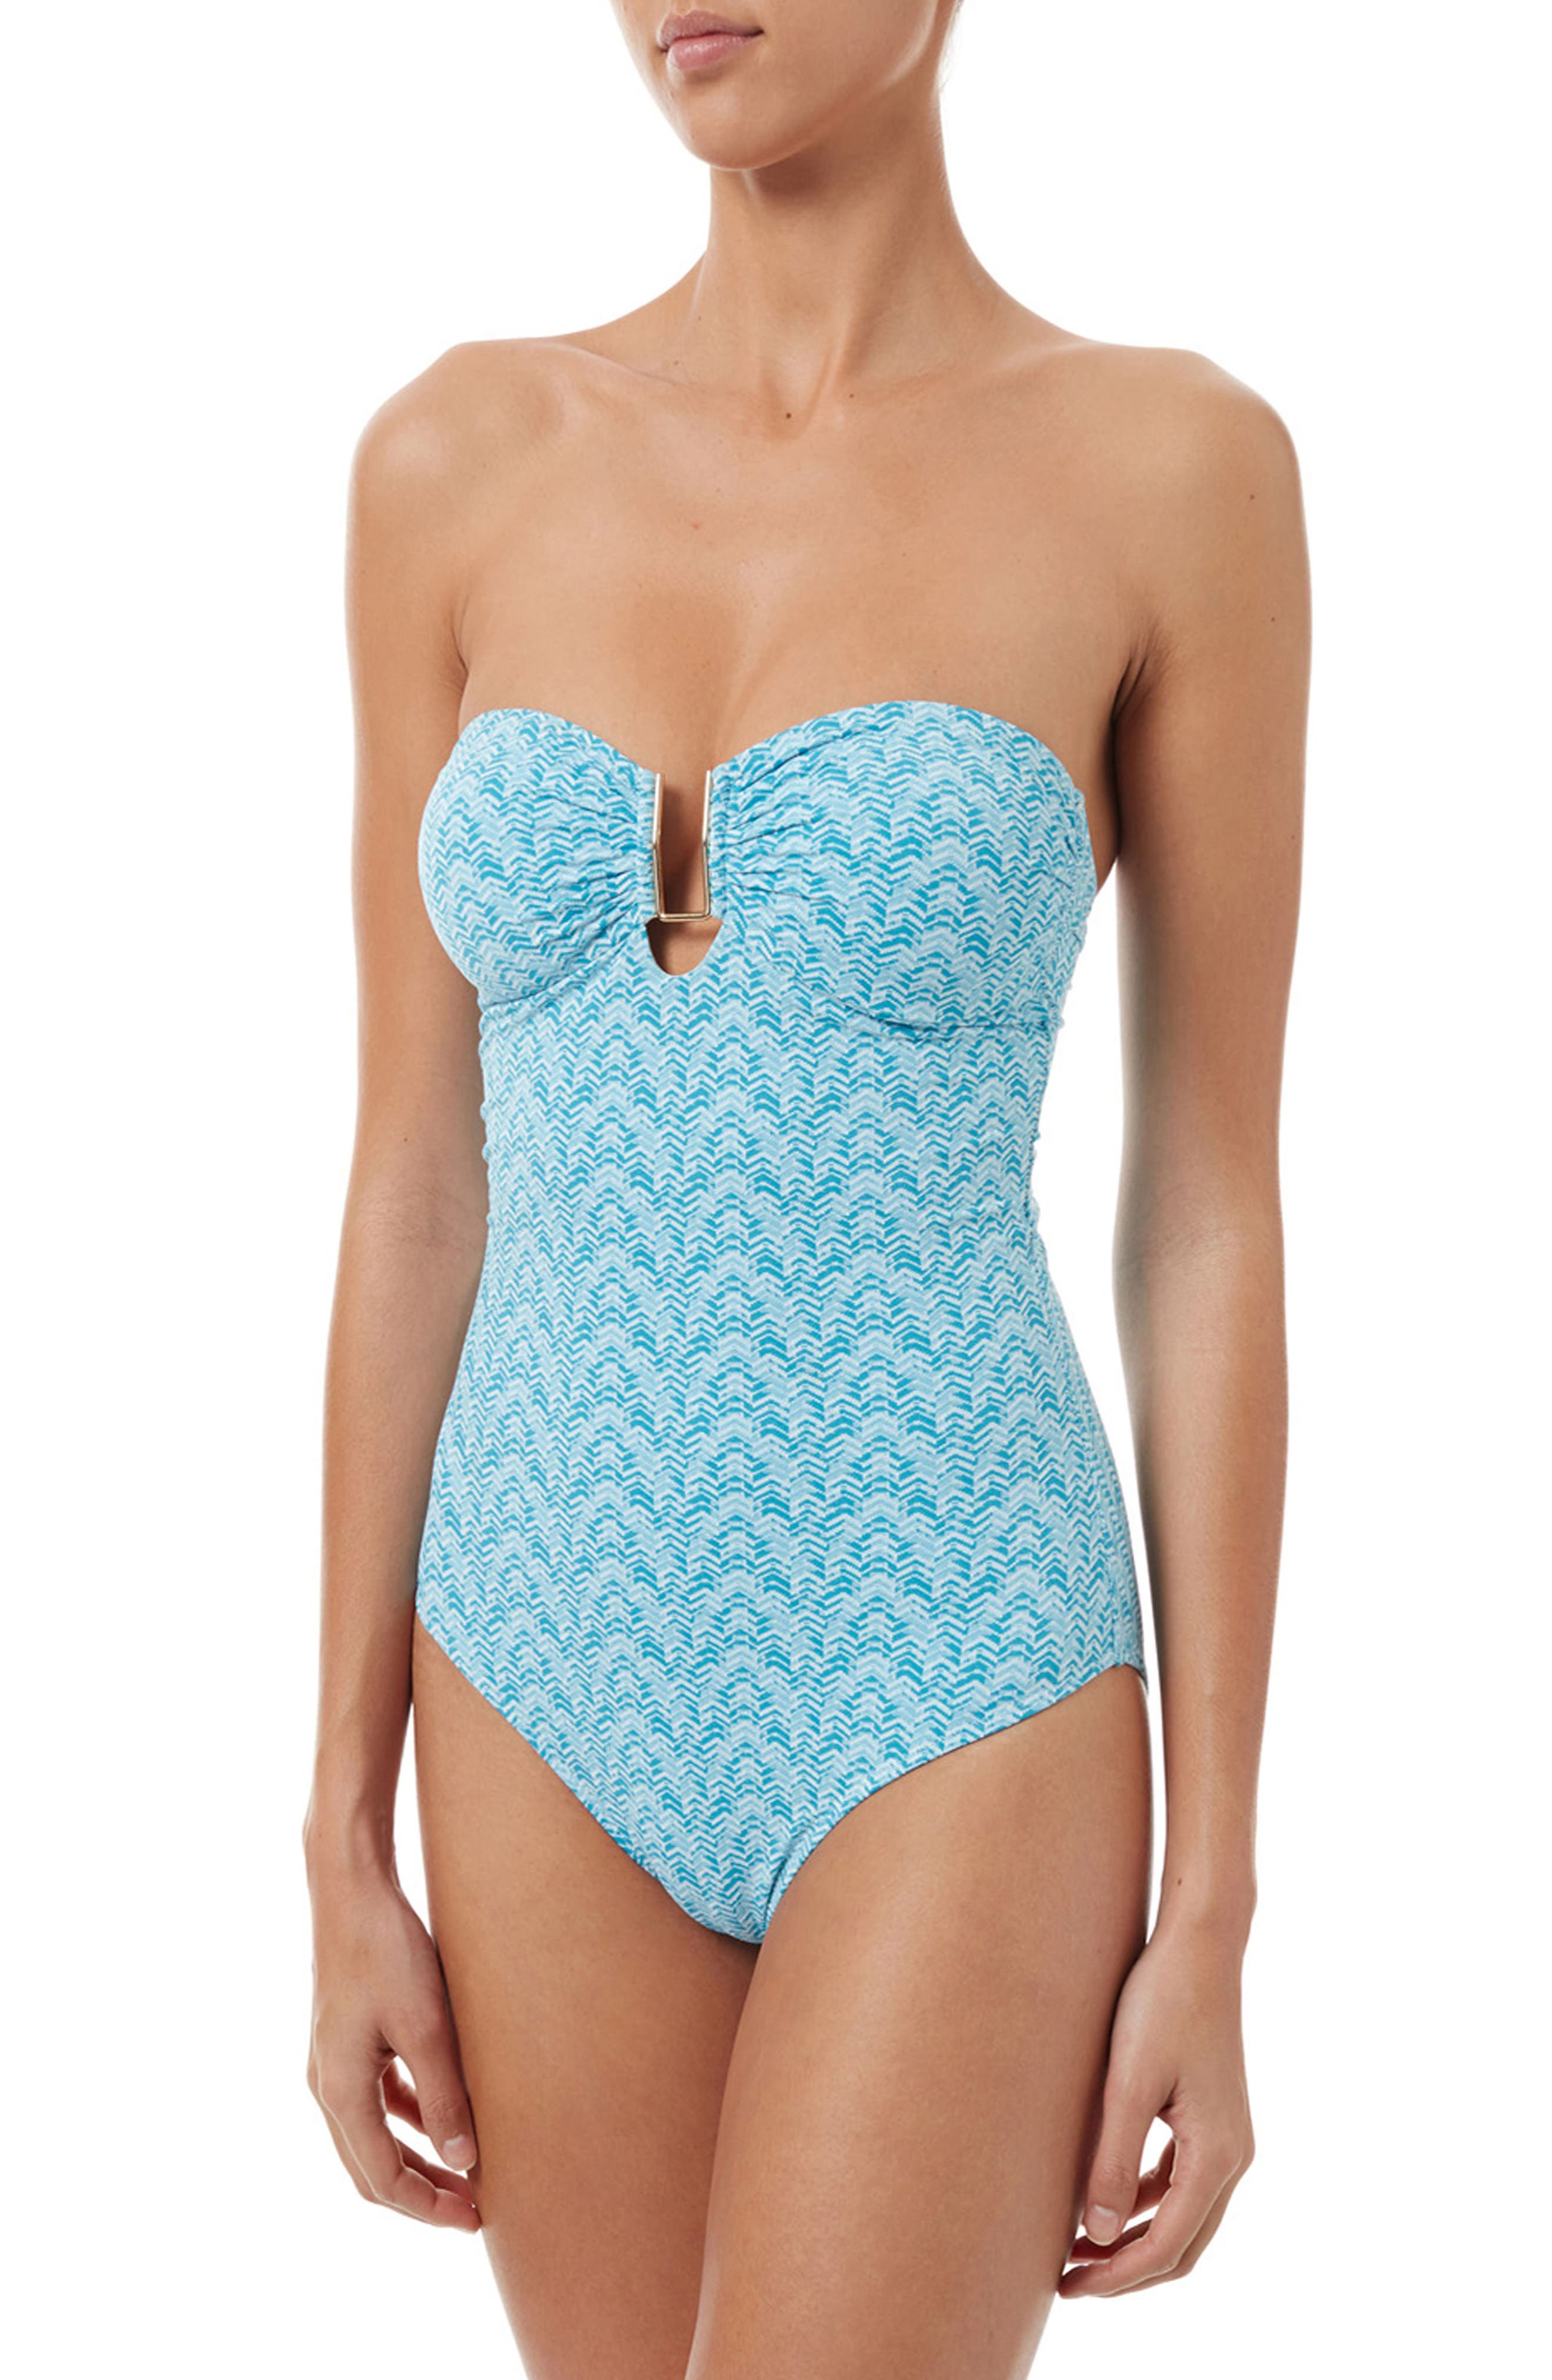 Argentina One-Piece Swimsuit,                         Main,                         color, 407